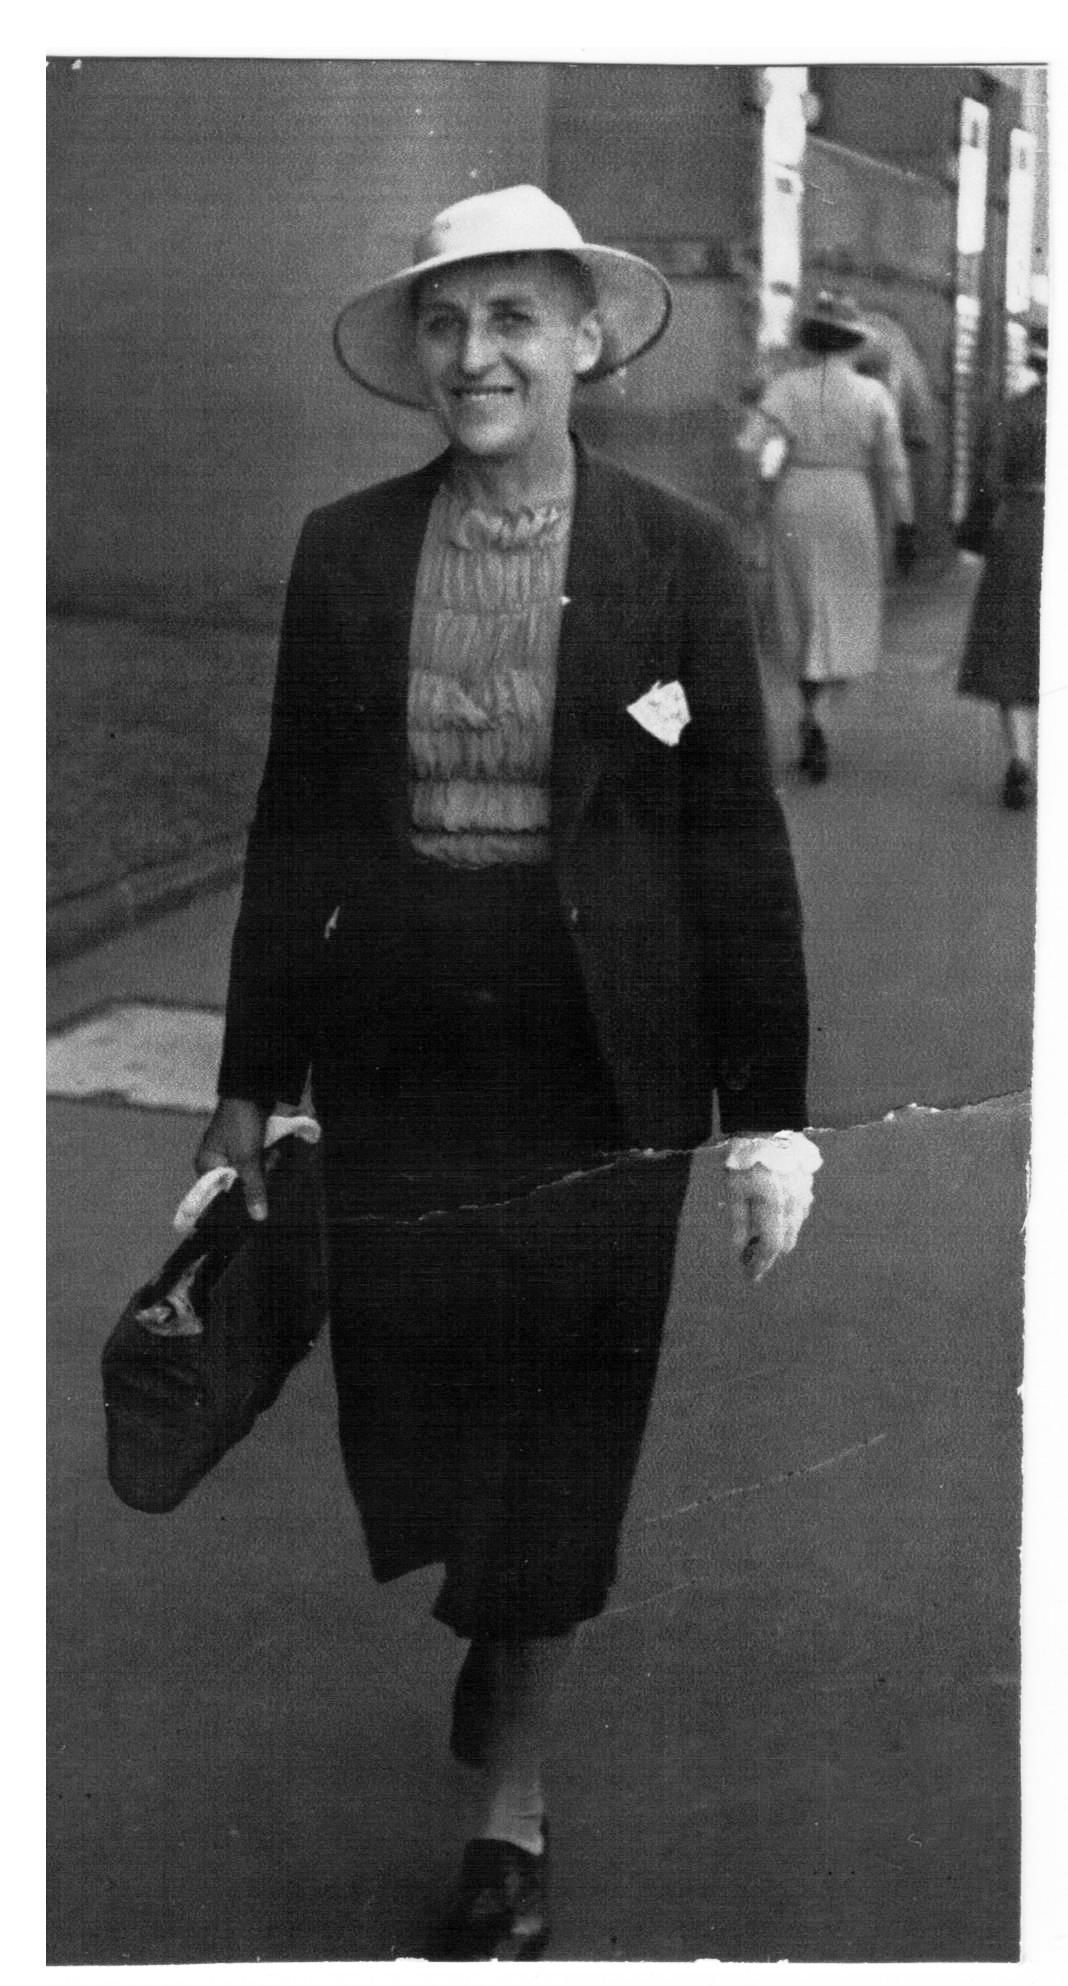 Clementina Marshall, 1940,  SMILING PROUDLY, dressed in a smart suit walking proudly in Sydney about